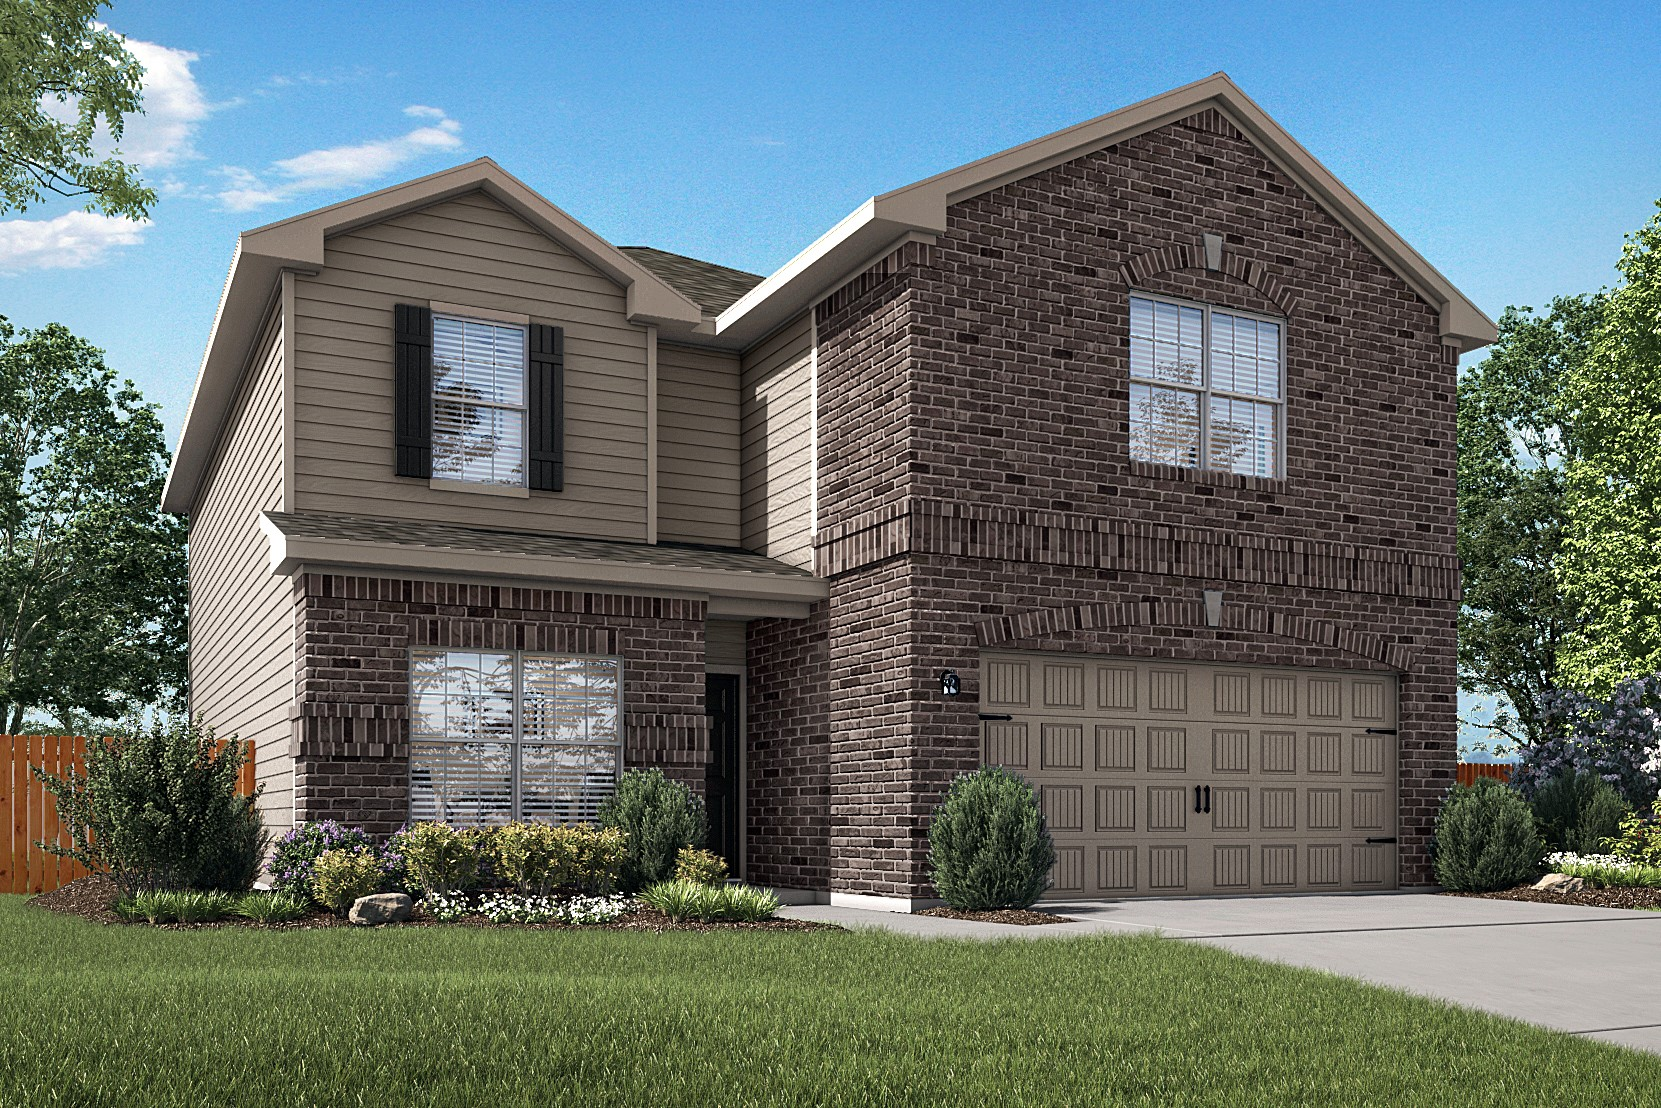 The spacious Travis plan is now available at Homestead Estates in Elgin, Texas.